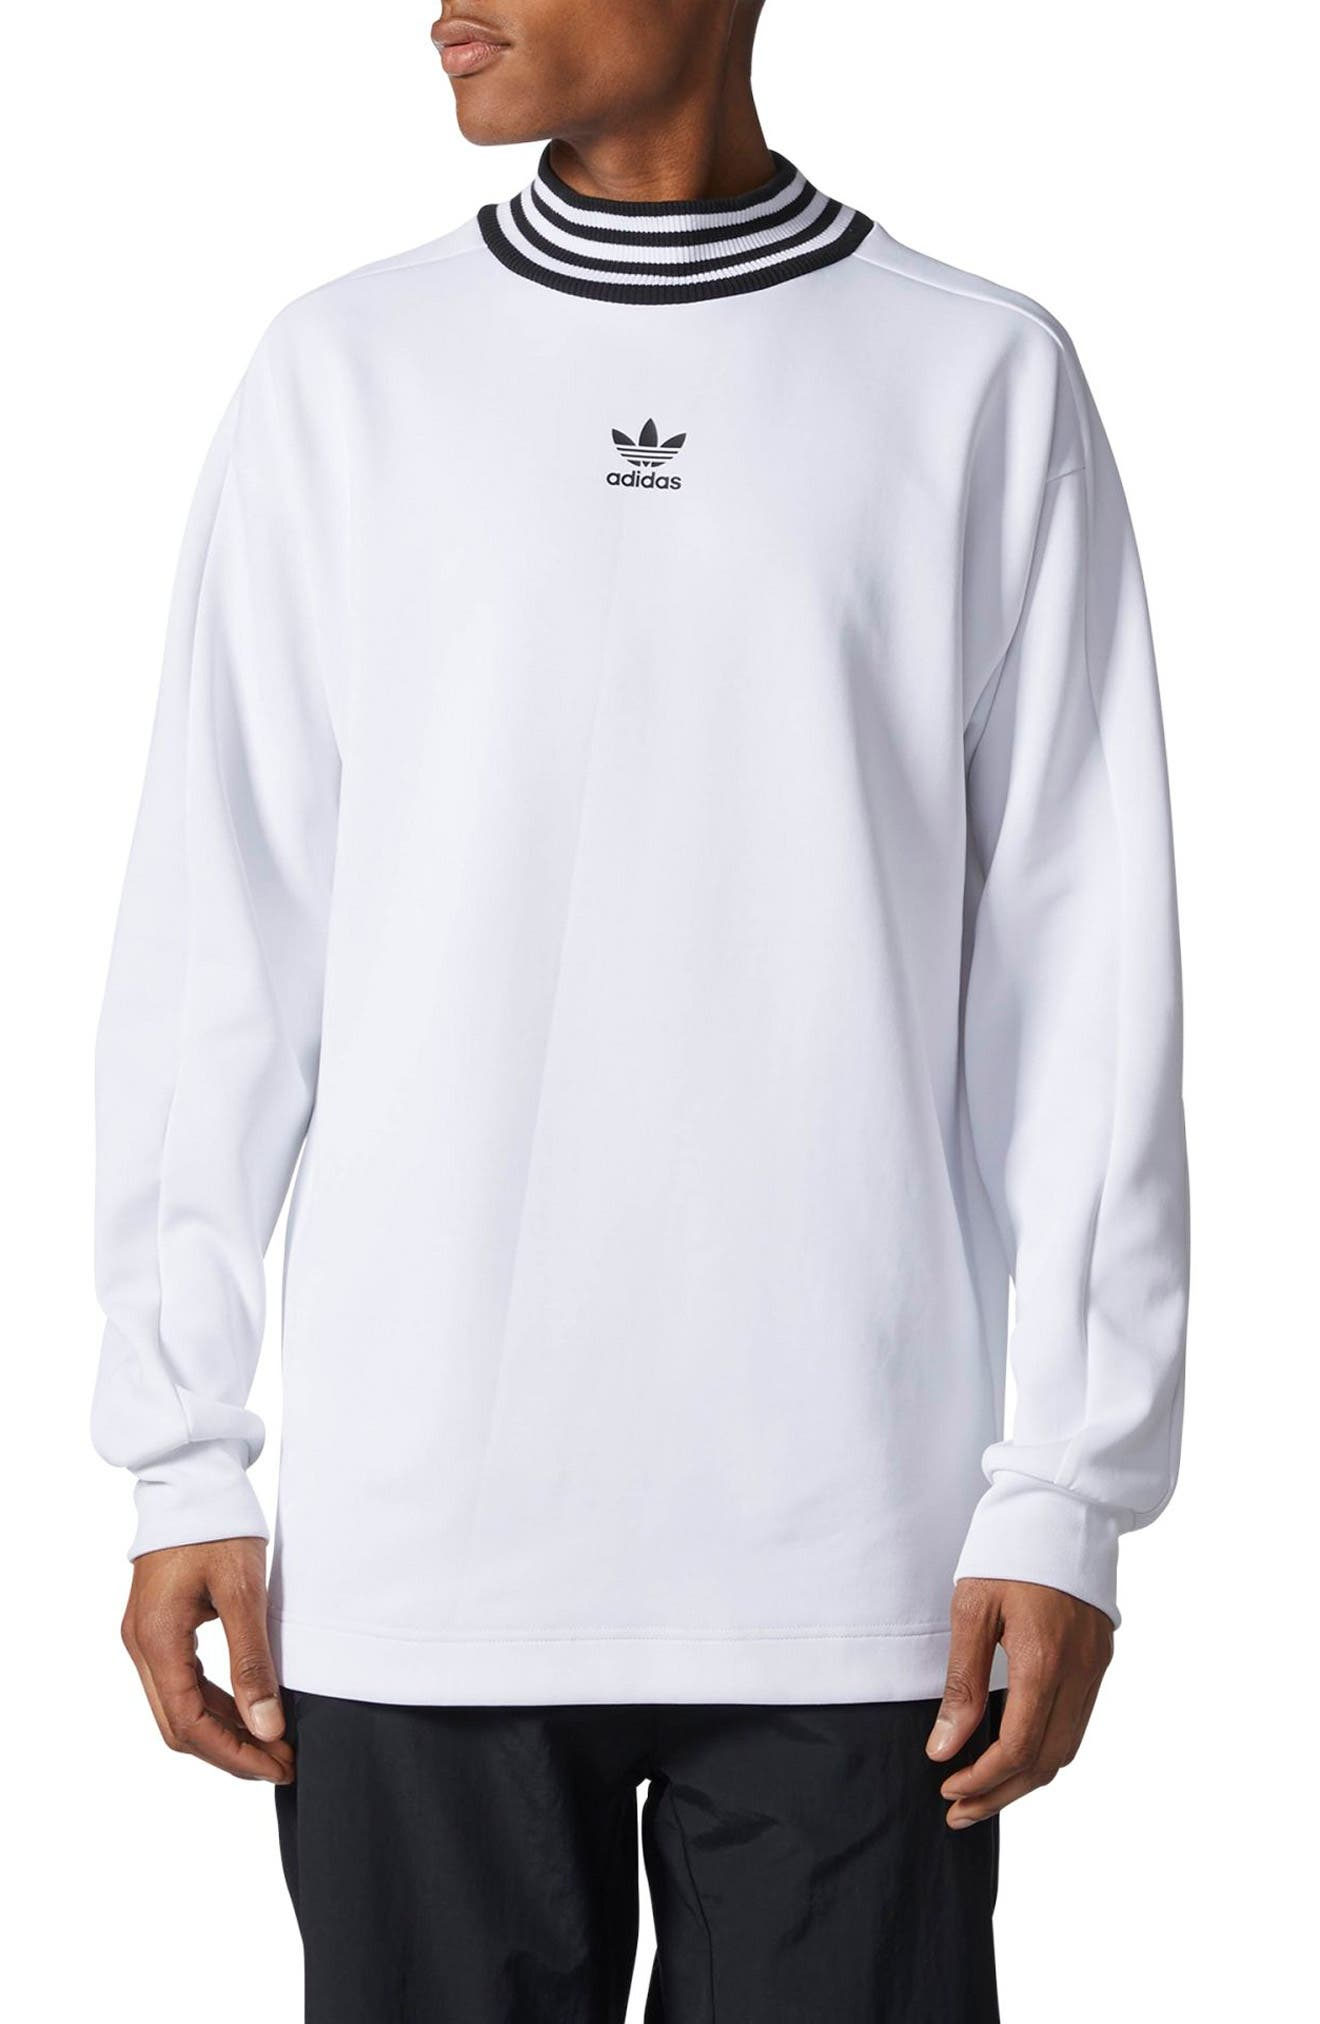 adidas Originals Mock Neck Sweatshirt